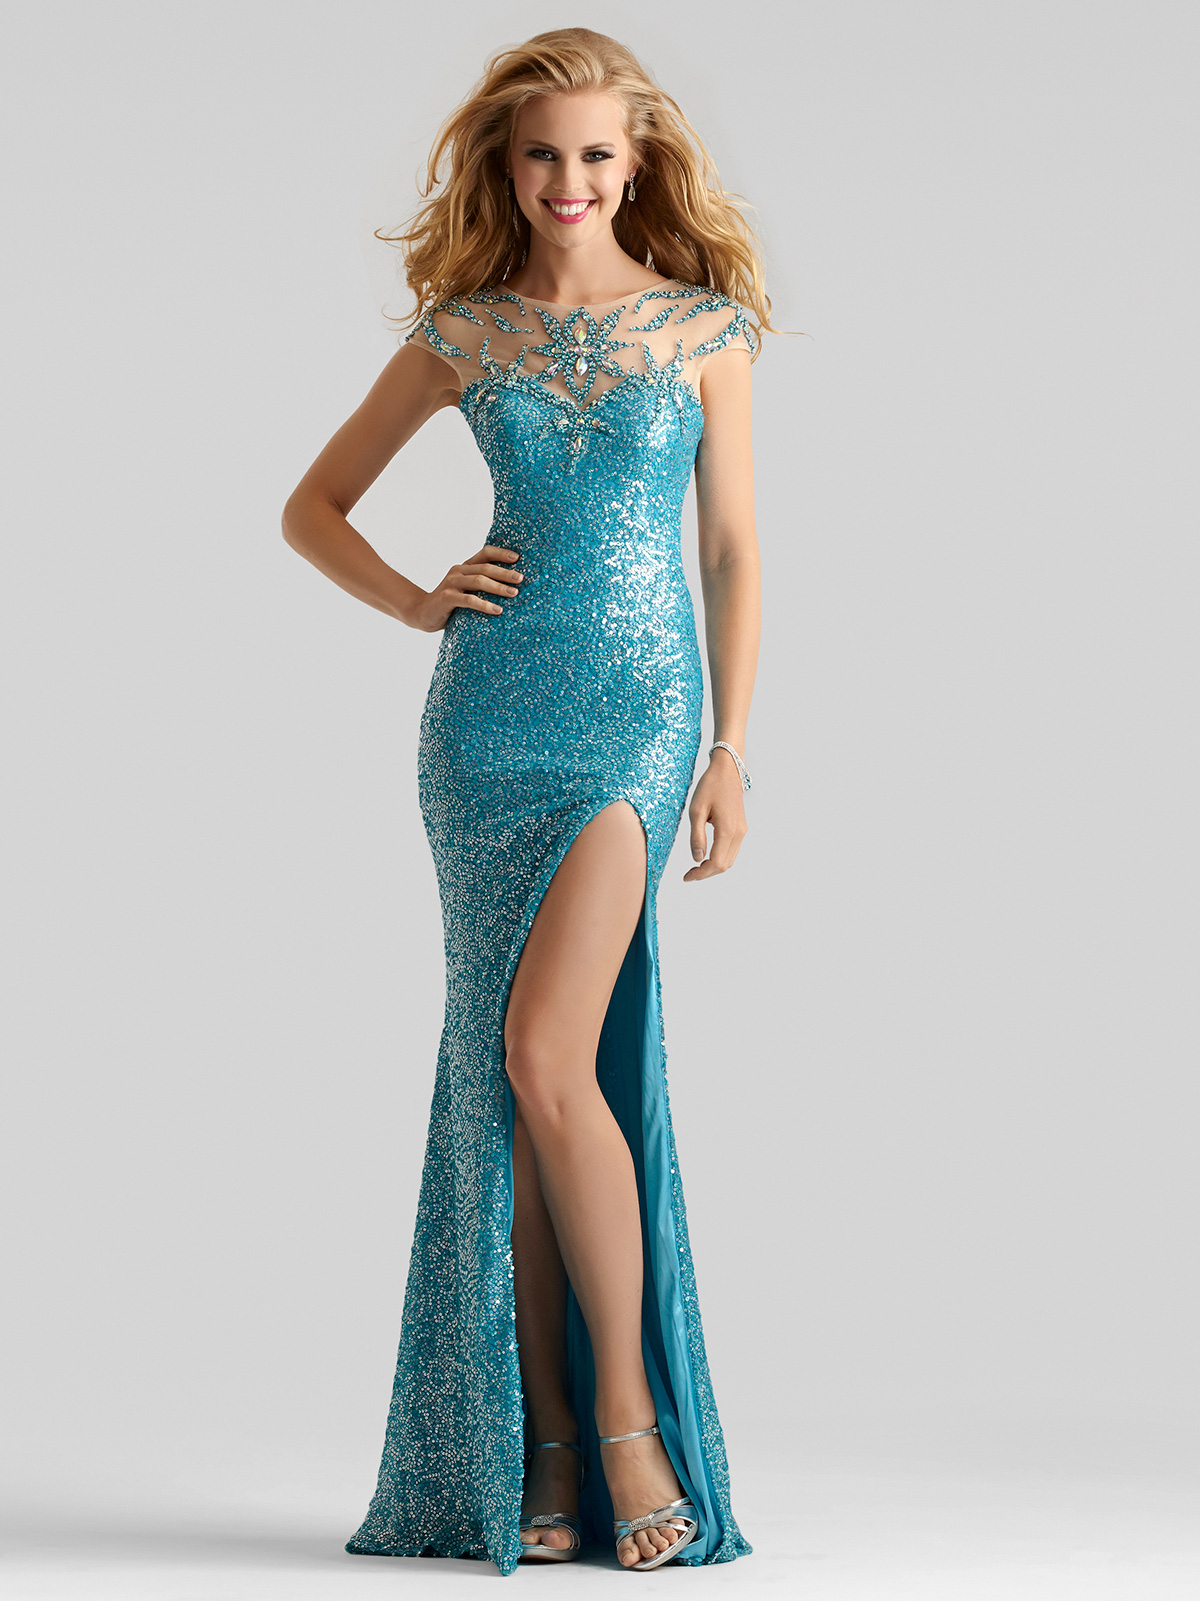 All The Rage Prom Dresses - Red Prom Dresses